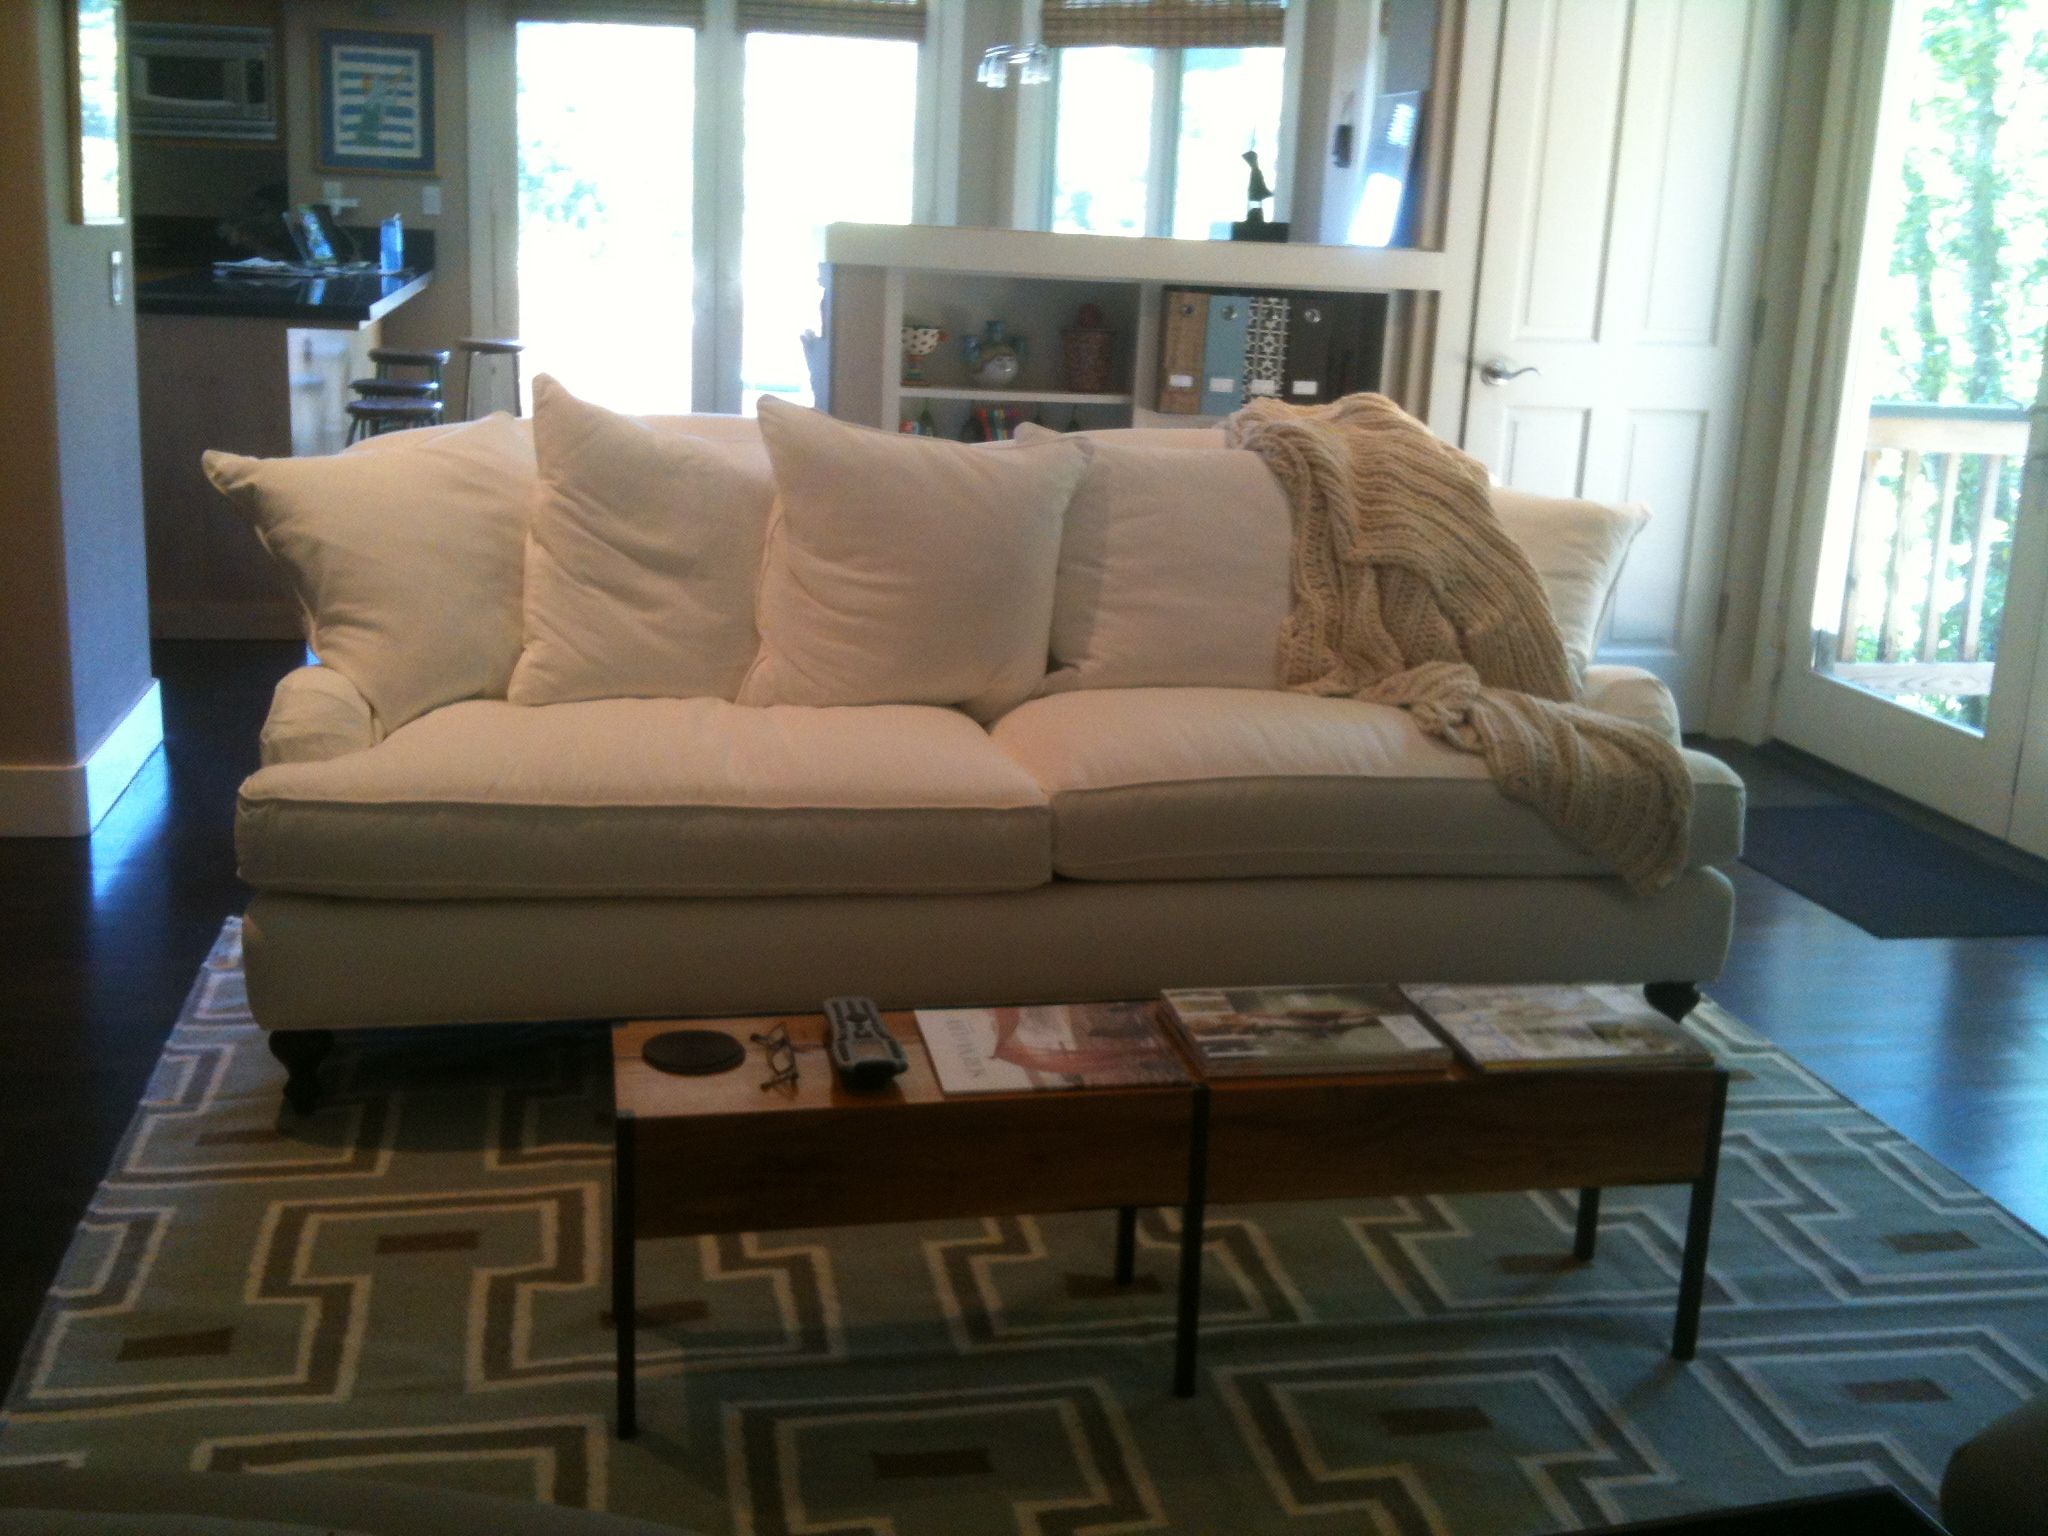 The serena lily miramar sofa so beautiful and comfy